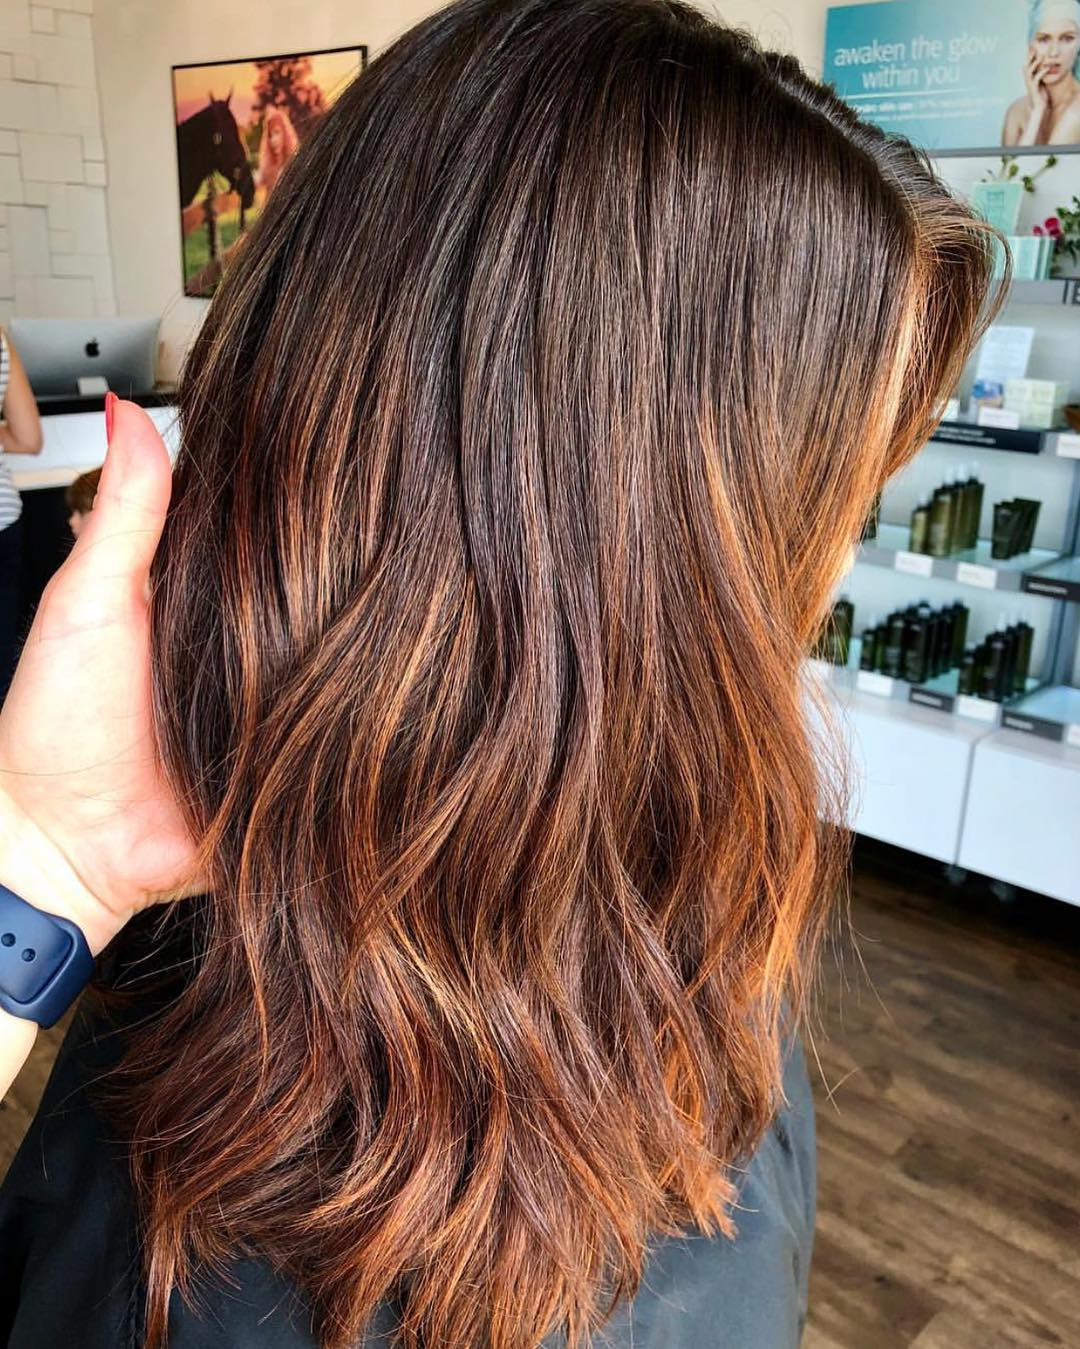 Copper Hair Color by Madelyn at Tangerine Salon Dallas